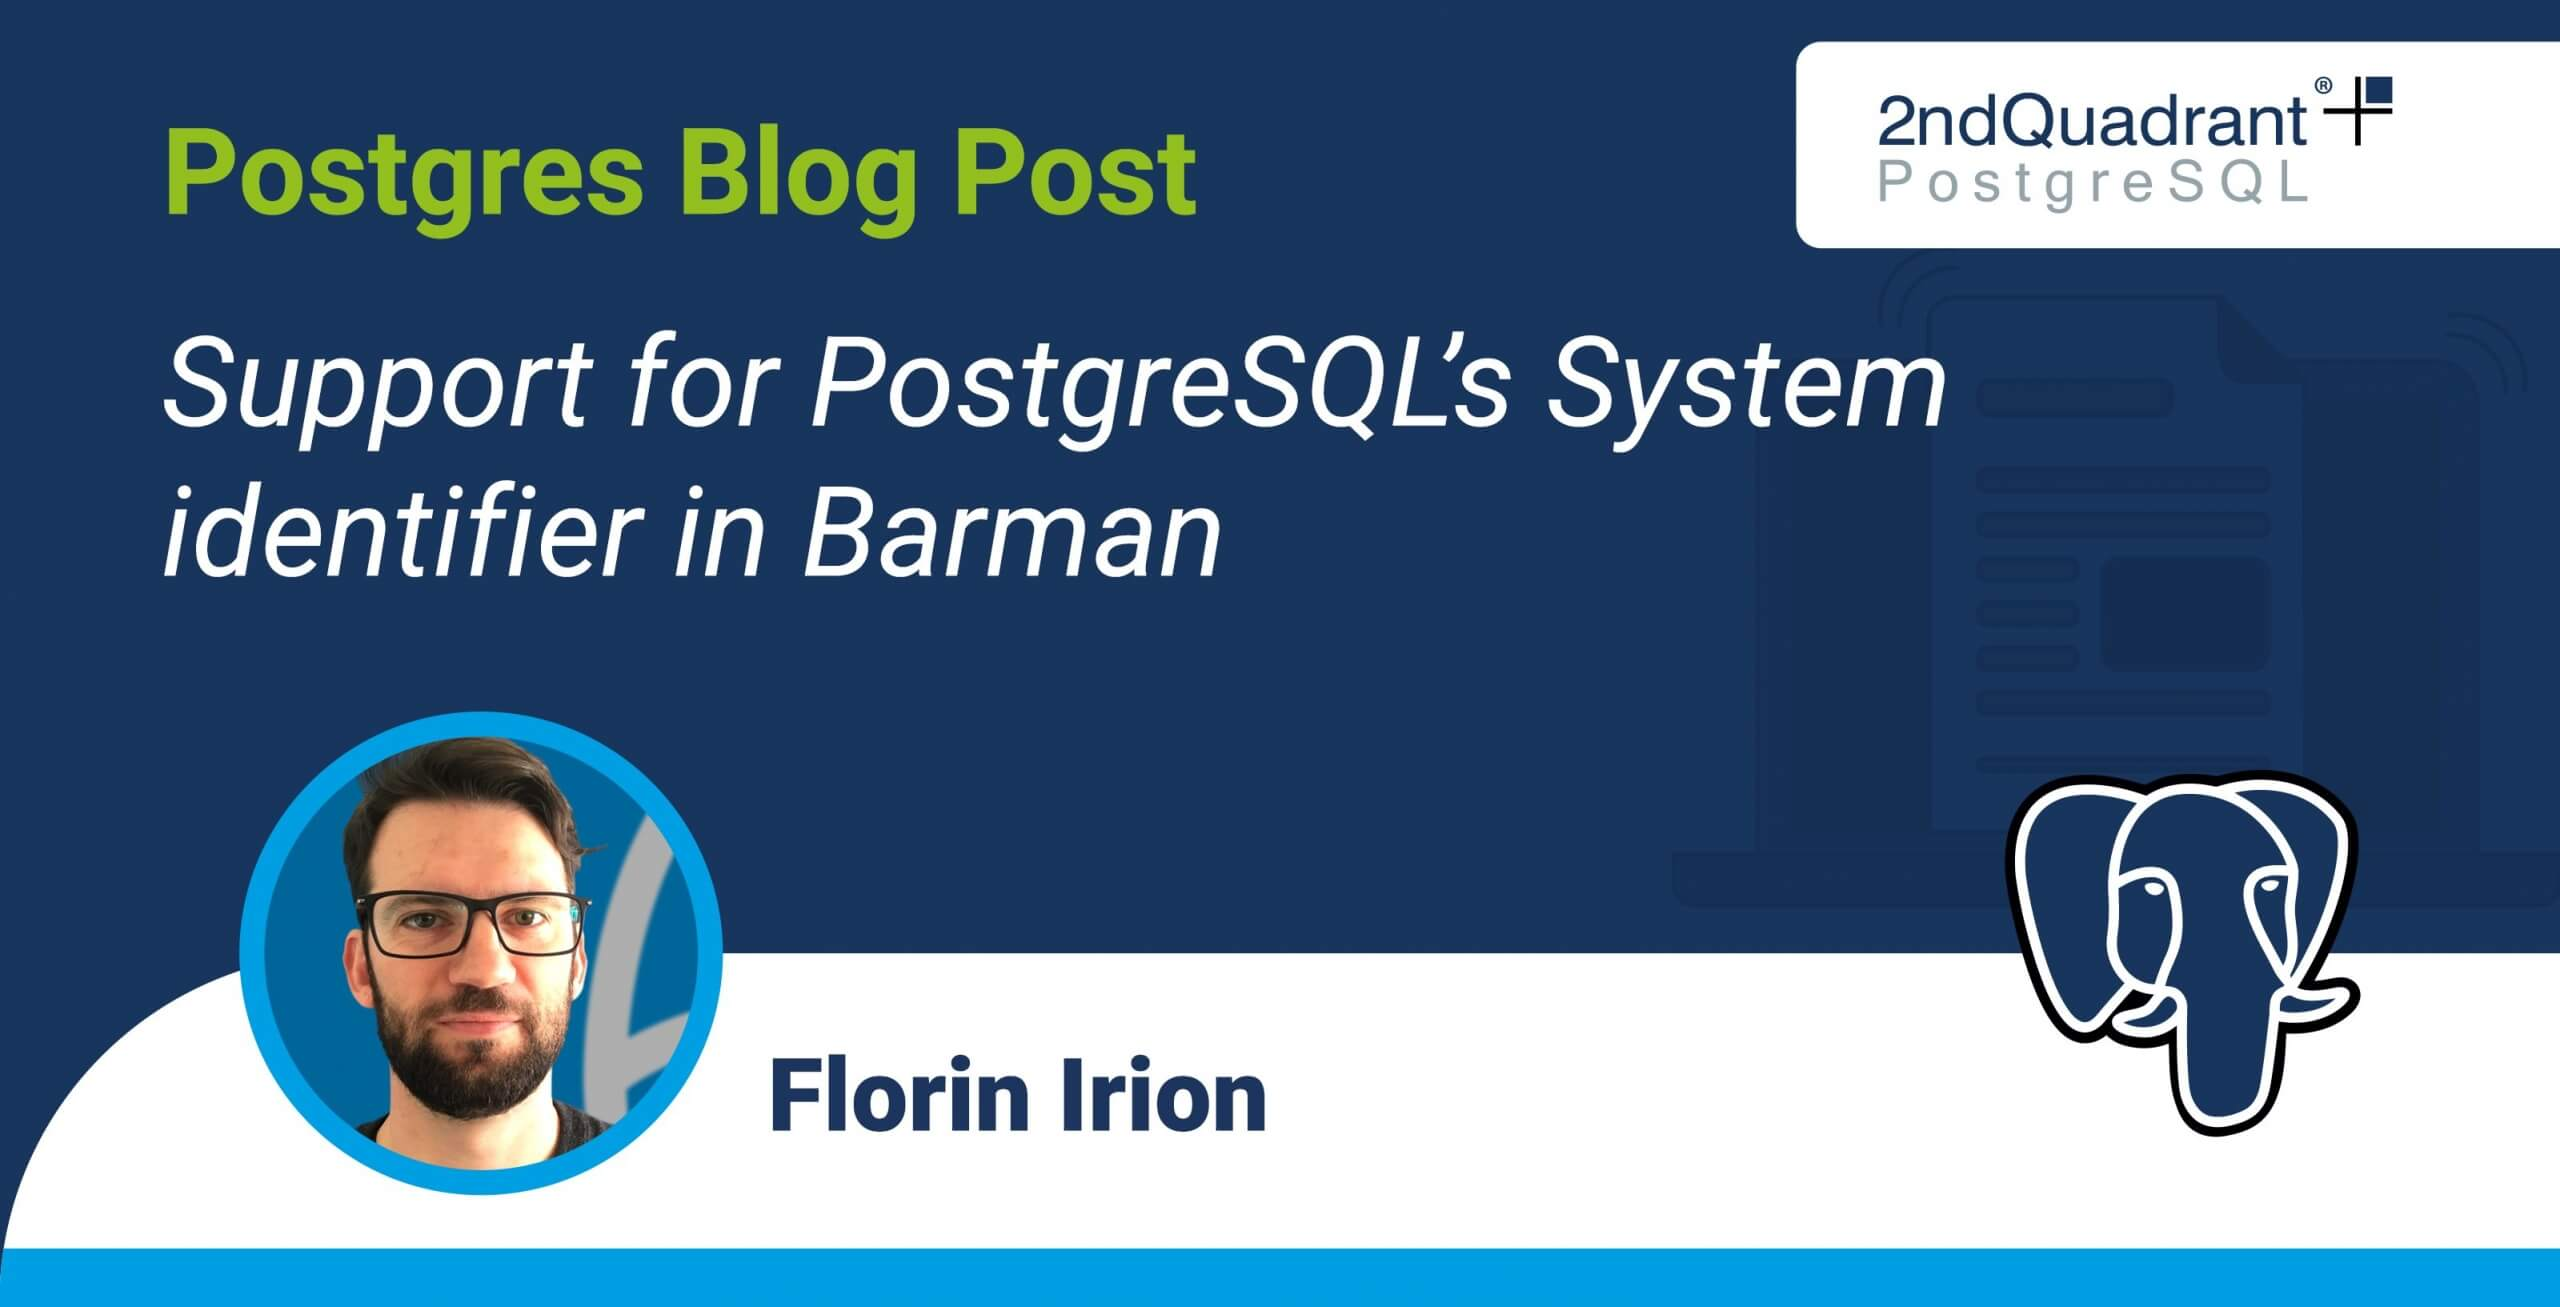 Support for PostgreSQL's System identifier in Barman